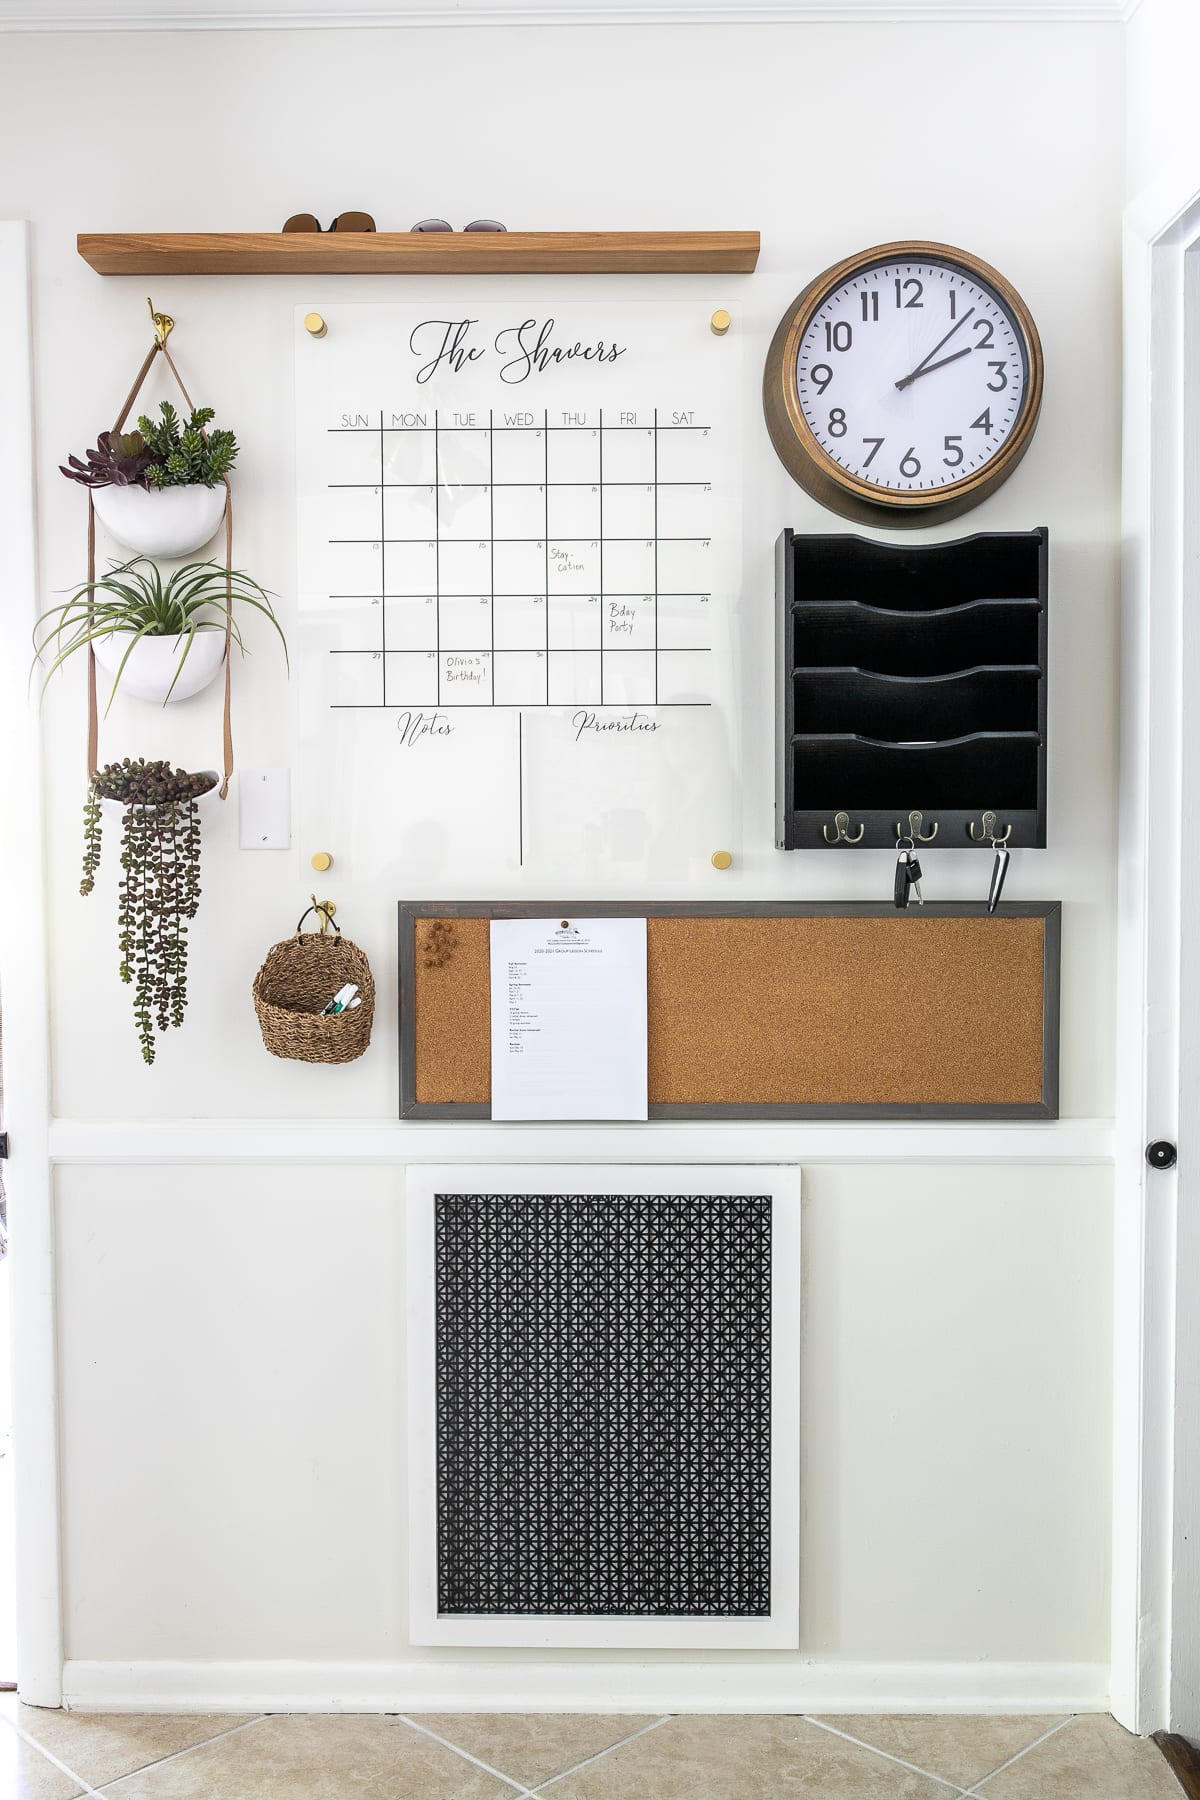 Command center wall with calendar, mail sorter, memo board, and drop zone to keep an entryway clear of clutter.